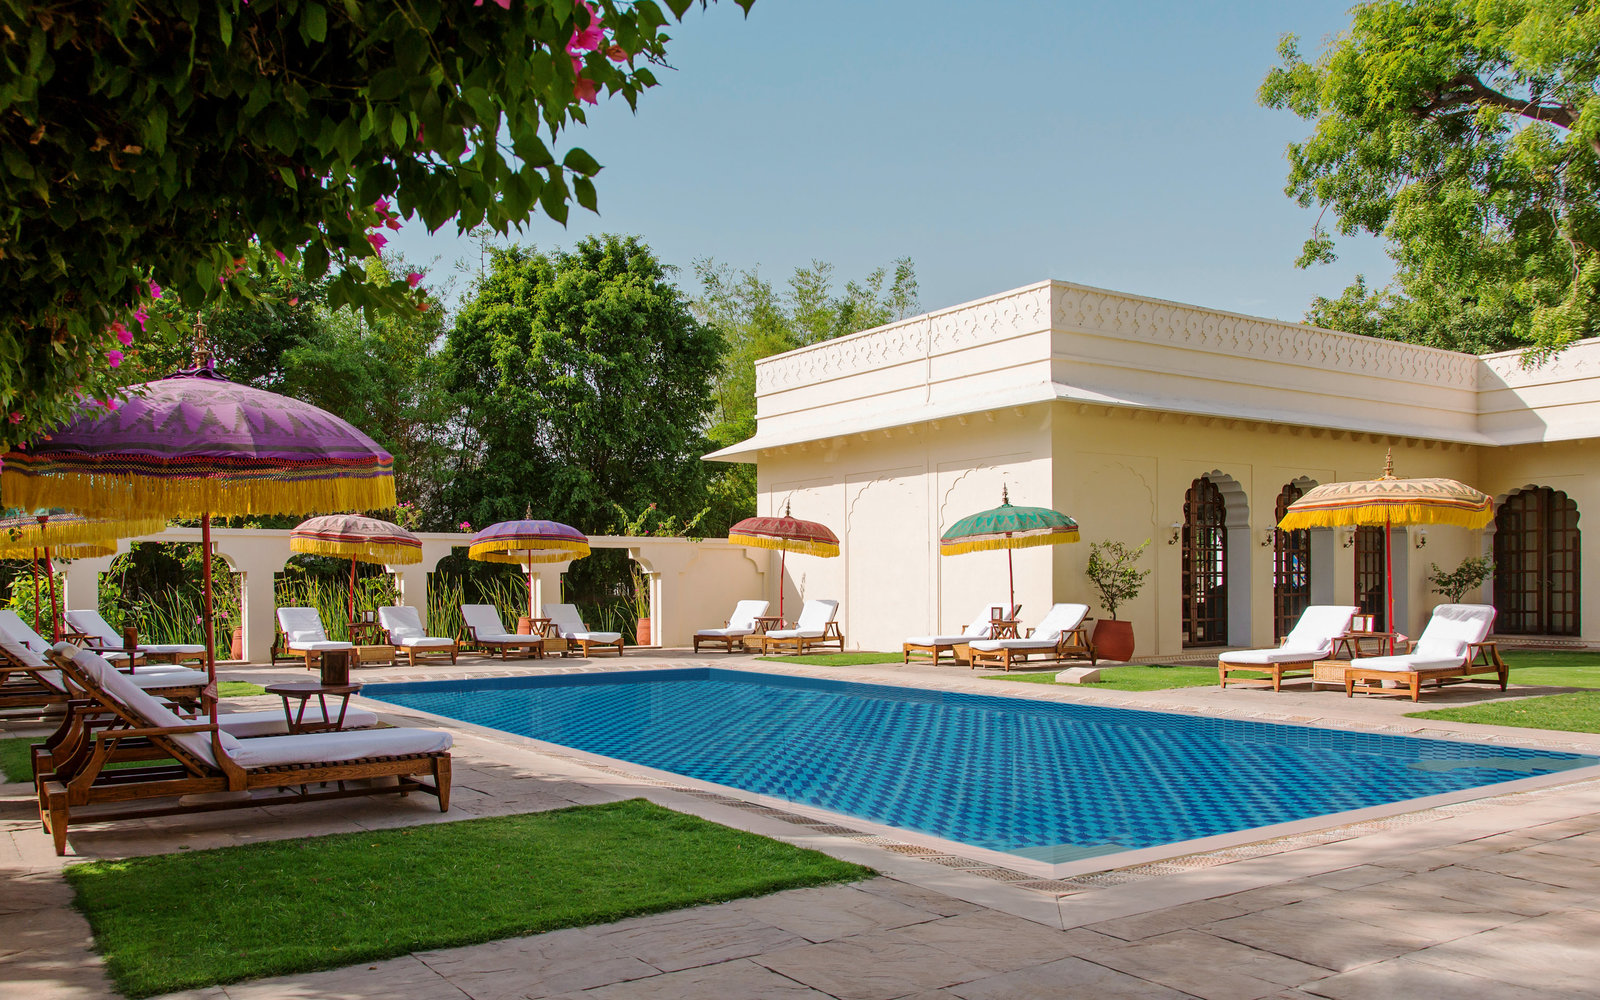 No. 3: The Oberoi Vanyavilas, Ranthambhore, India